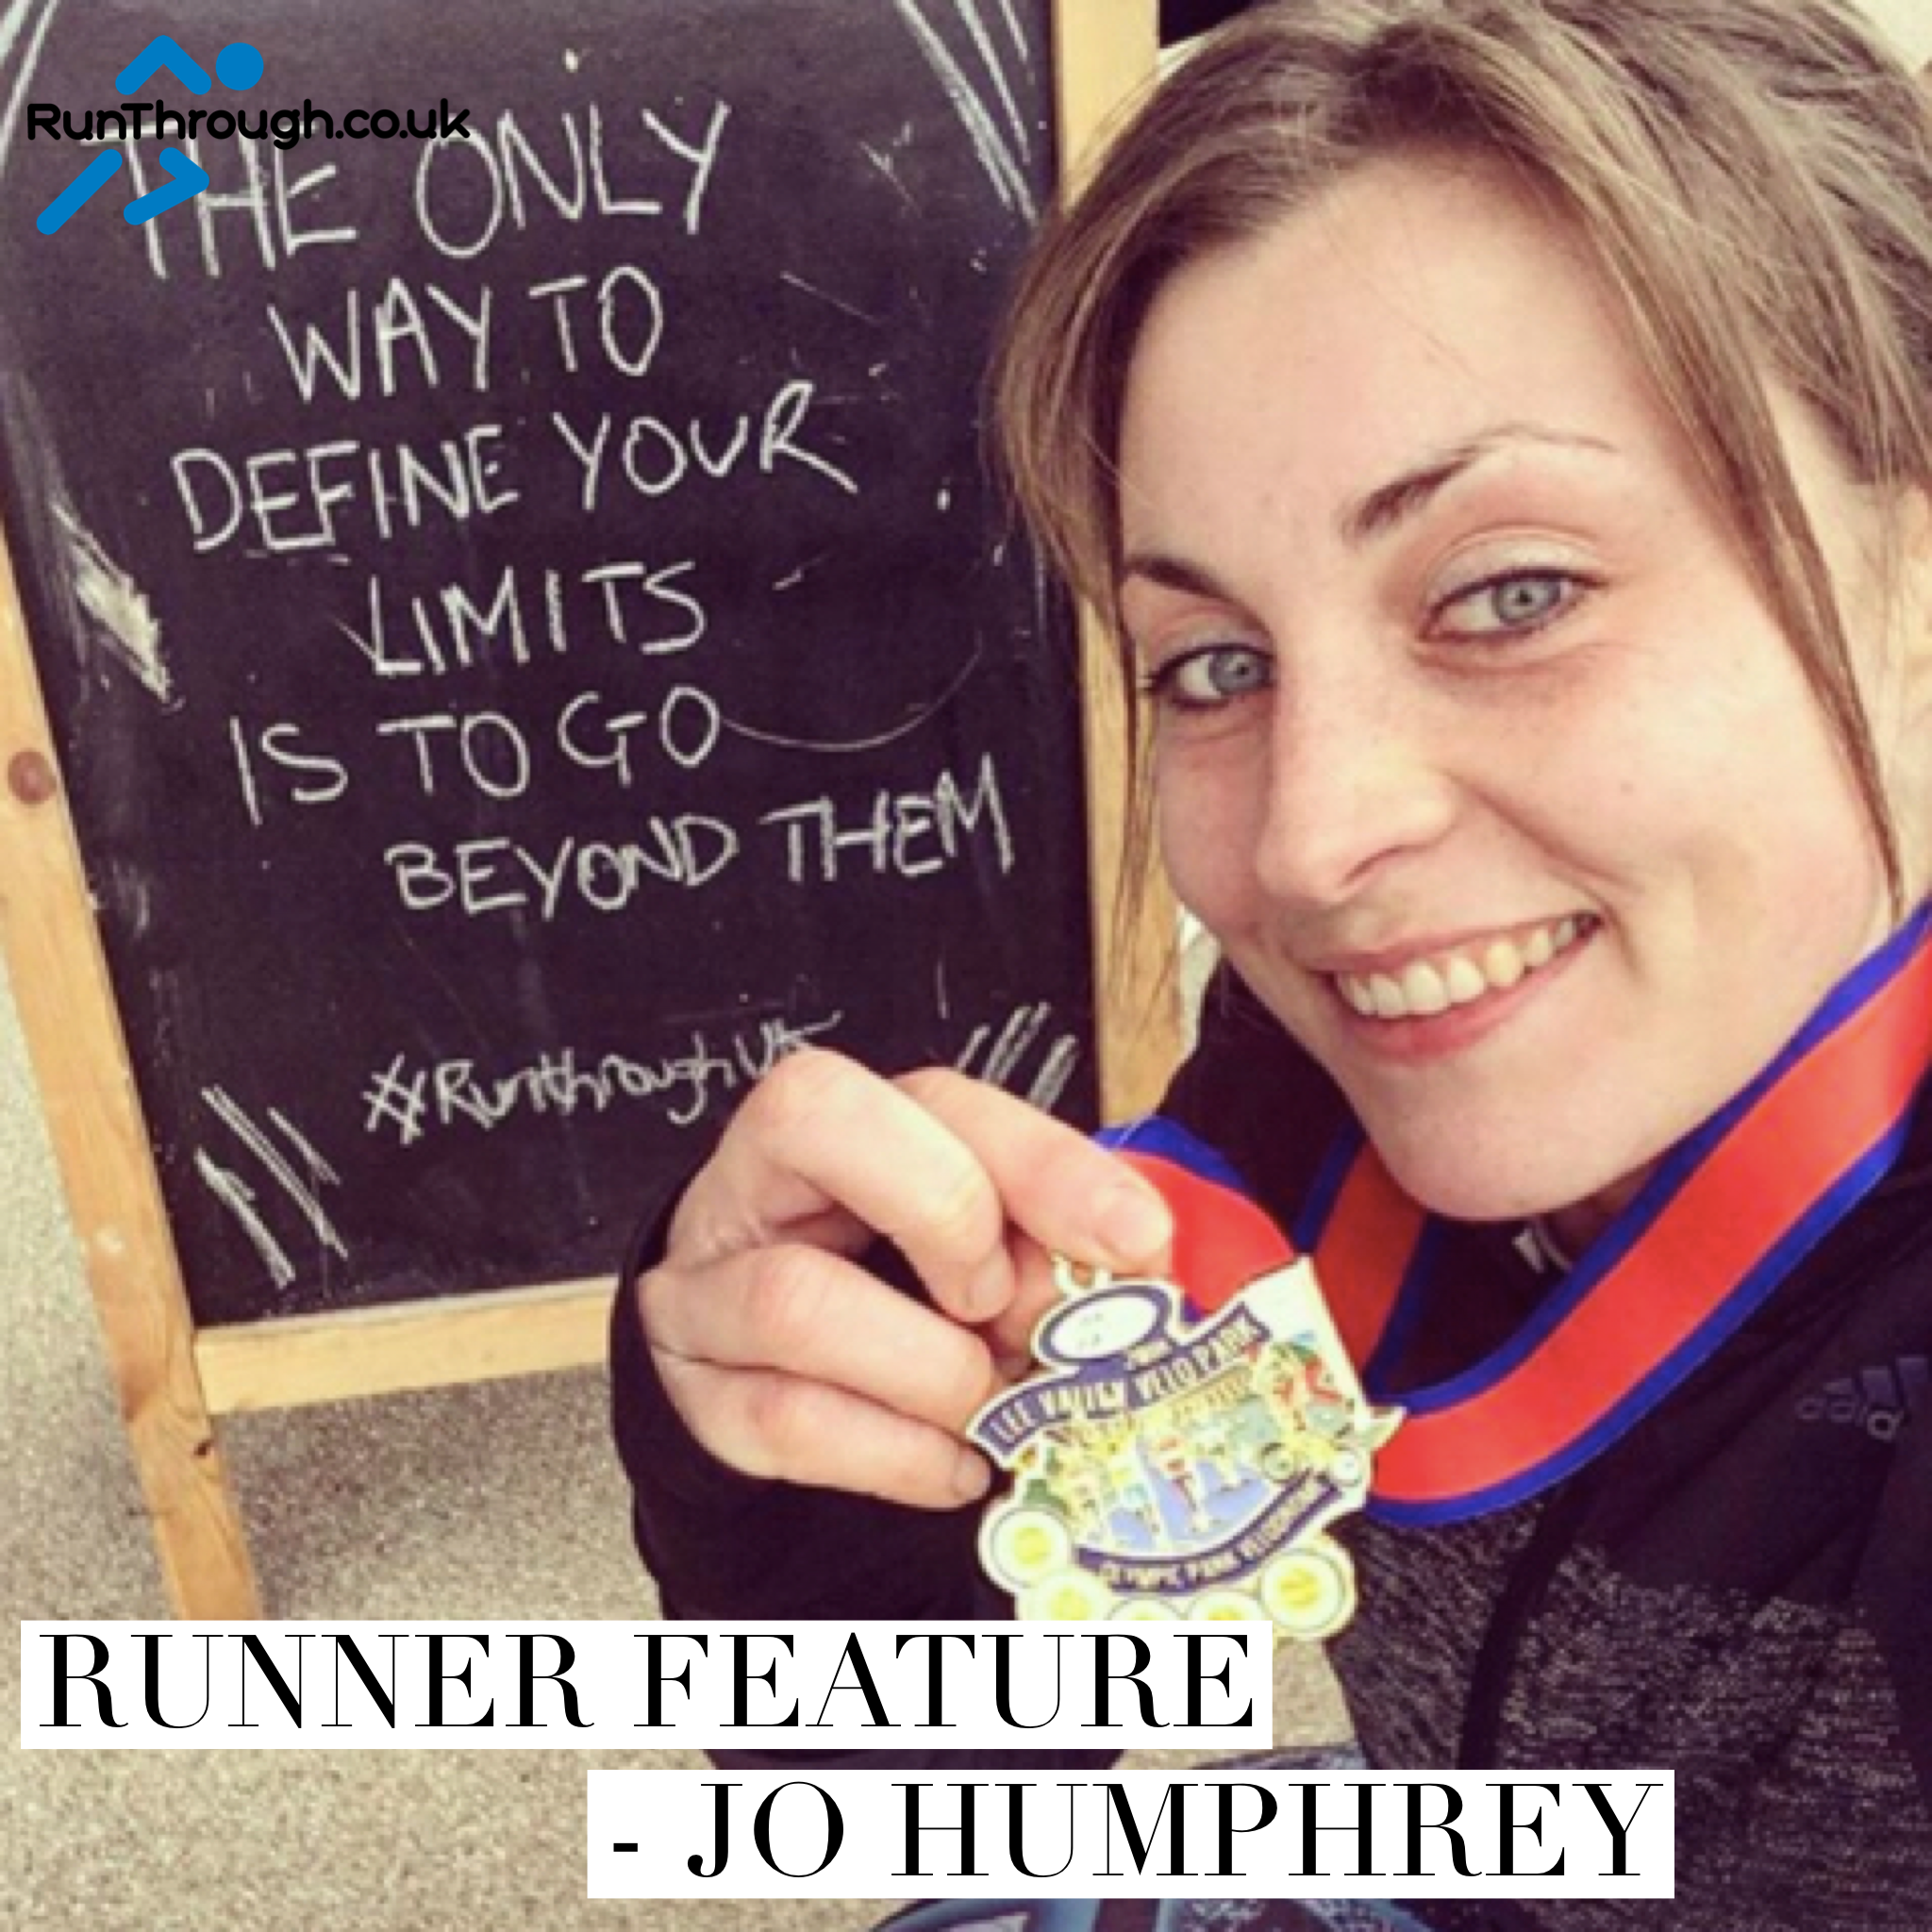 Runner Feature – Jo Humphrey